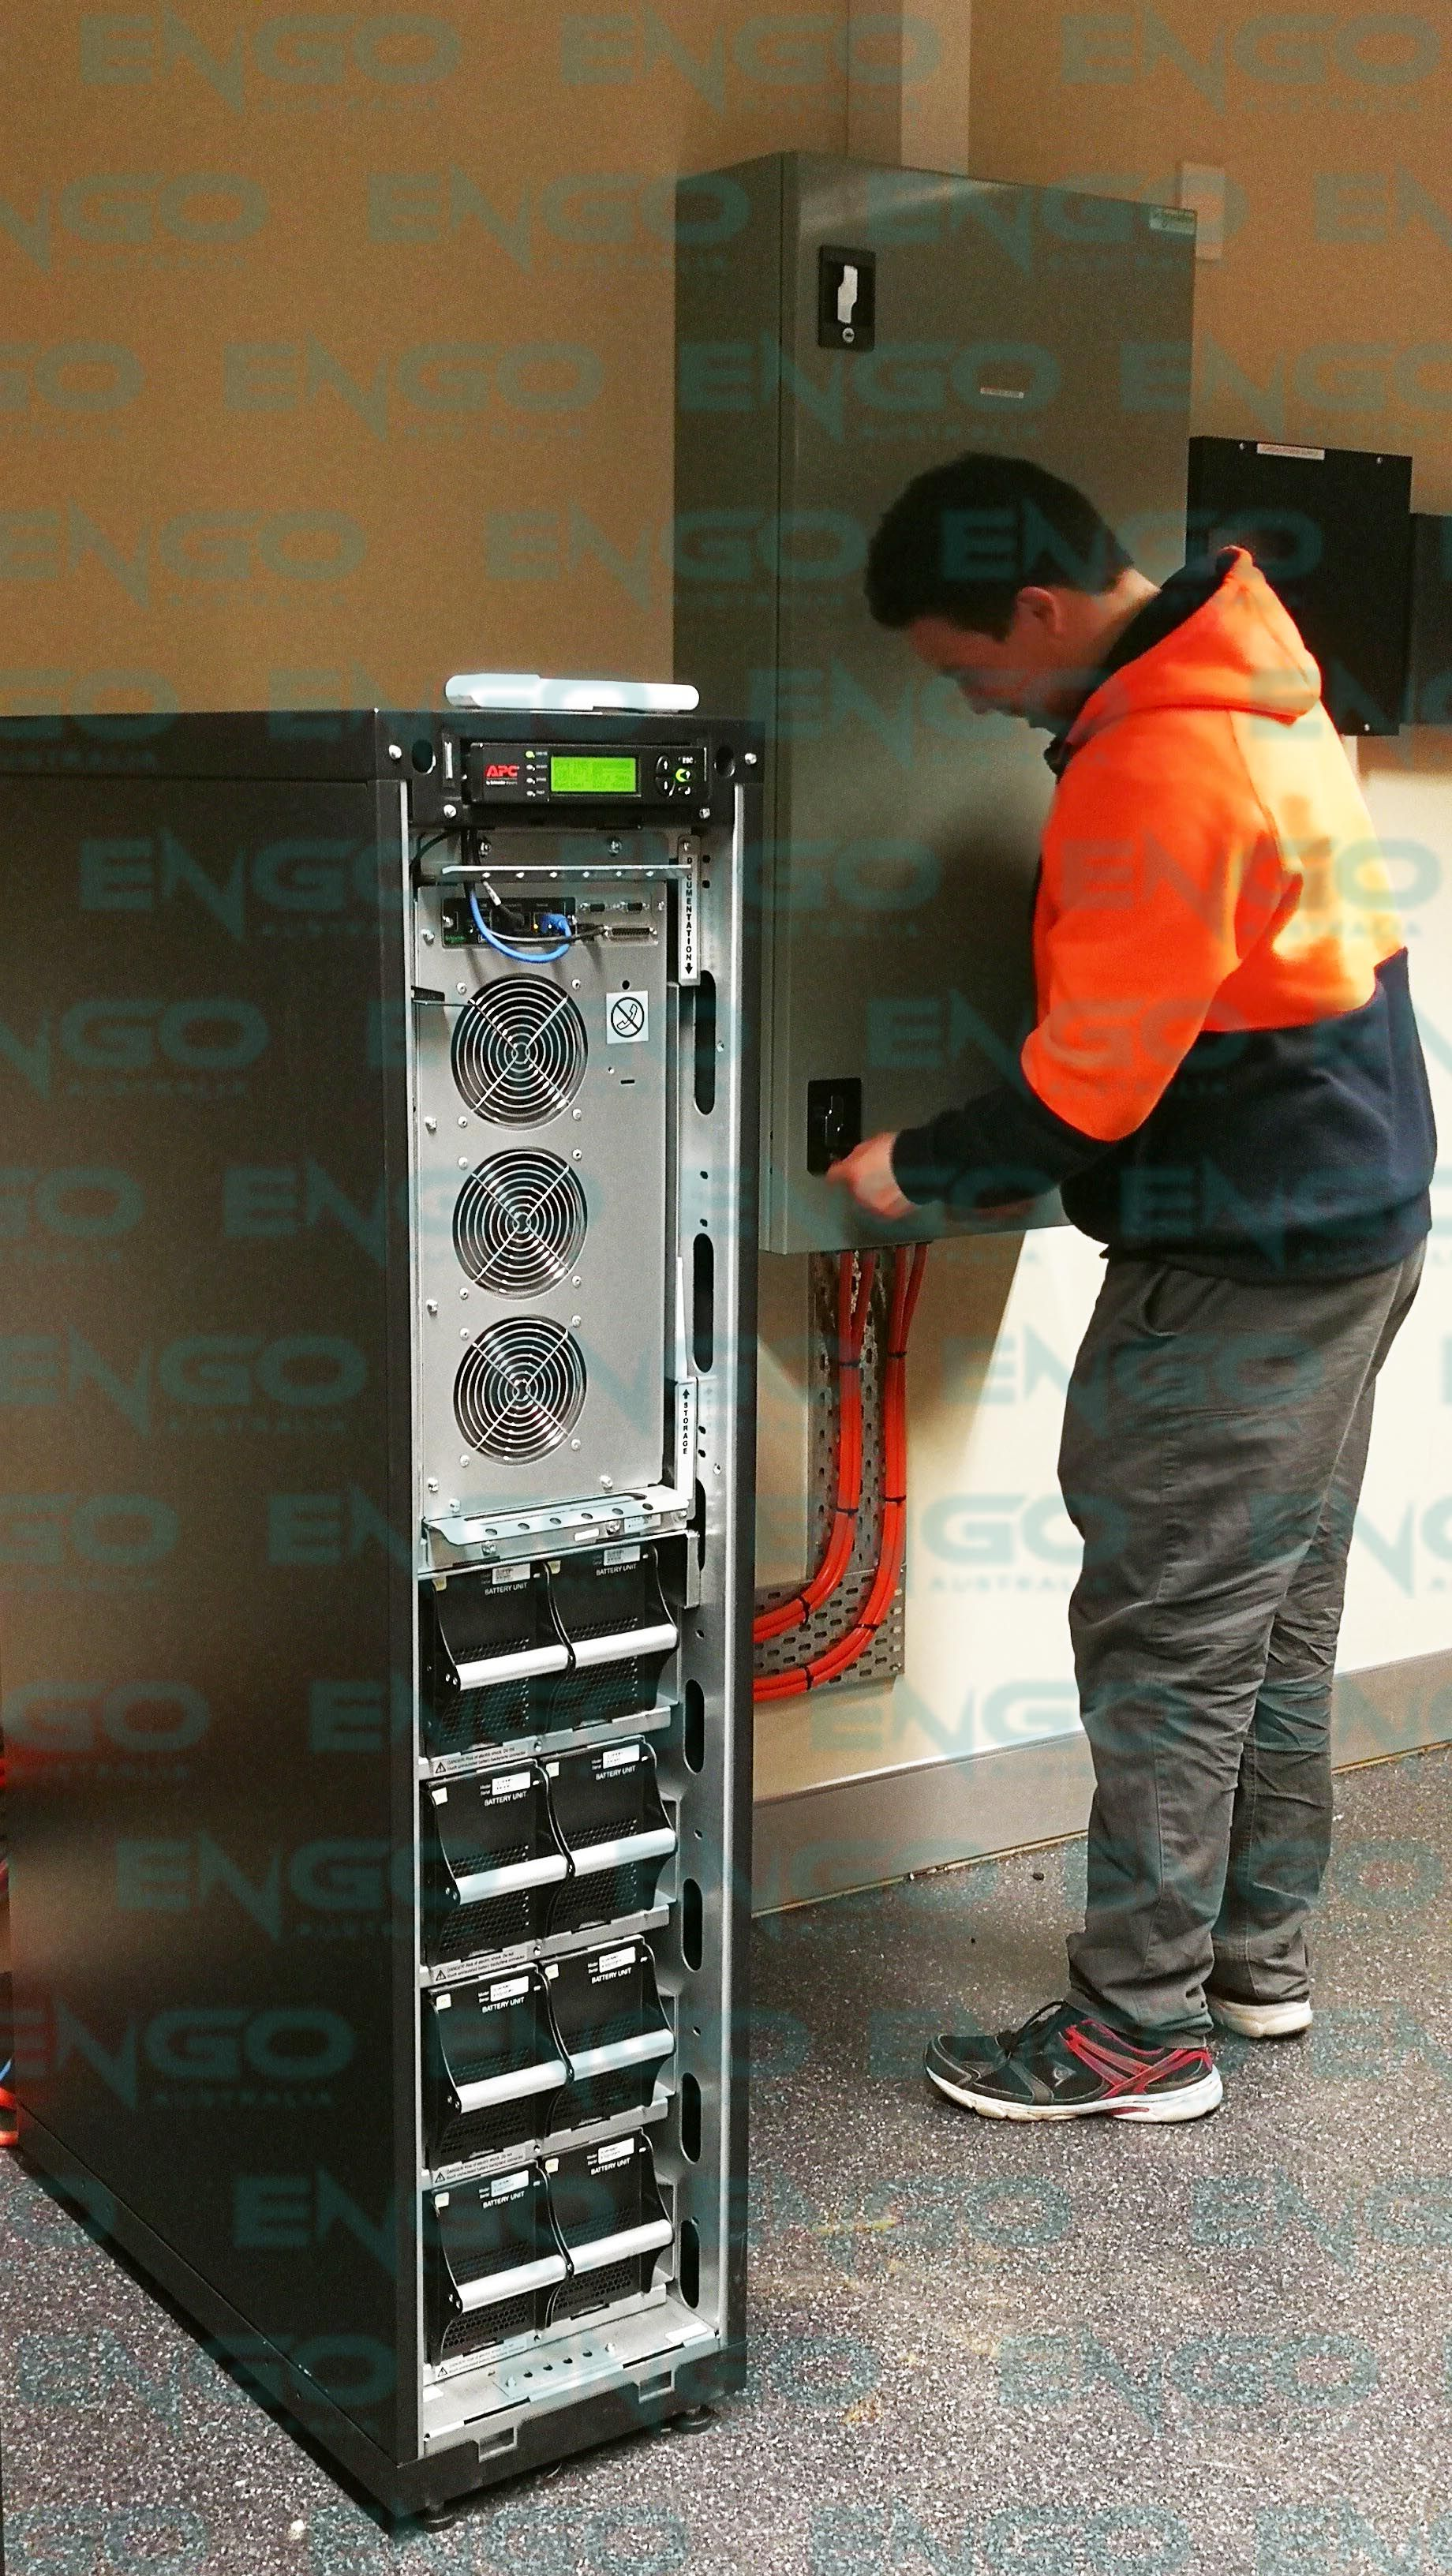 Engo Australia Offer Ups Installation Maintenance And Servicing Ups Start Up Commissioning Services Ups Relocation Transport Services O Ups System